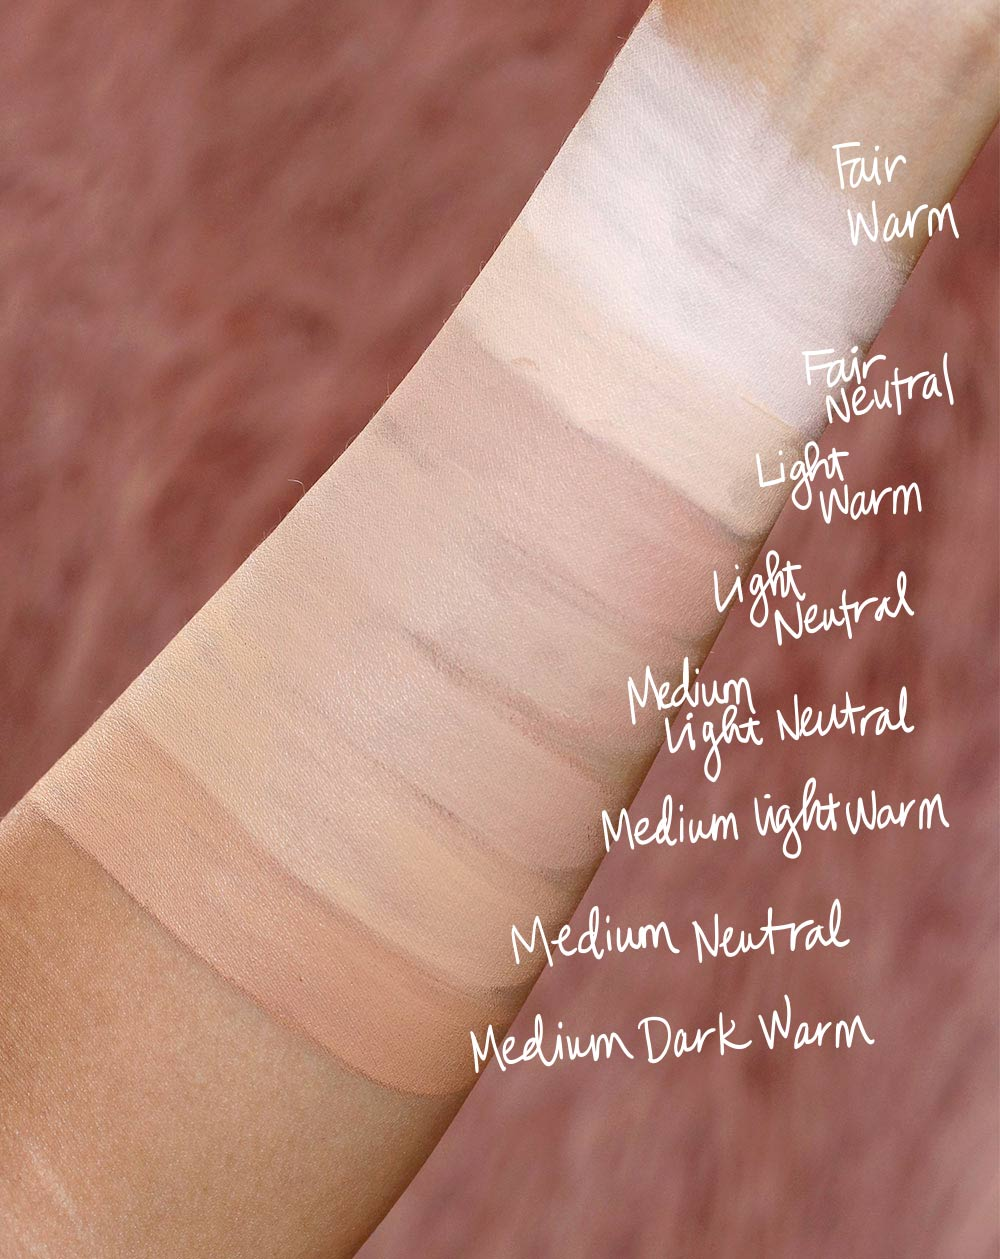 urban decay all nighter waterproof full coverage concealer swatches